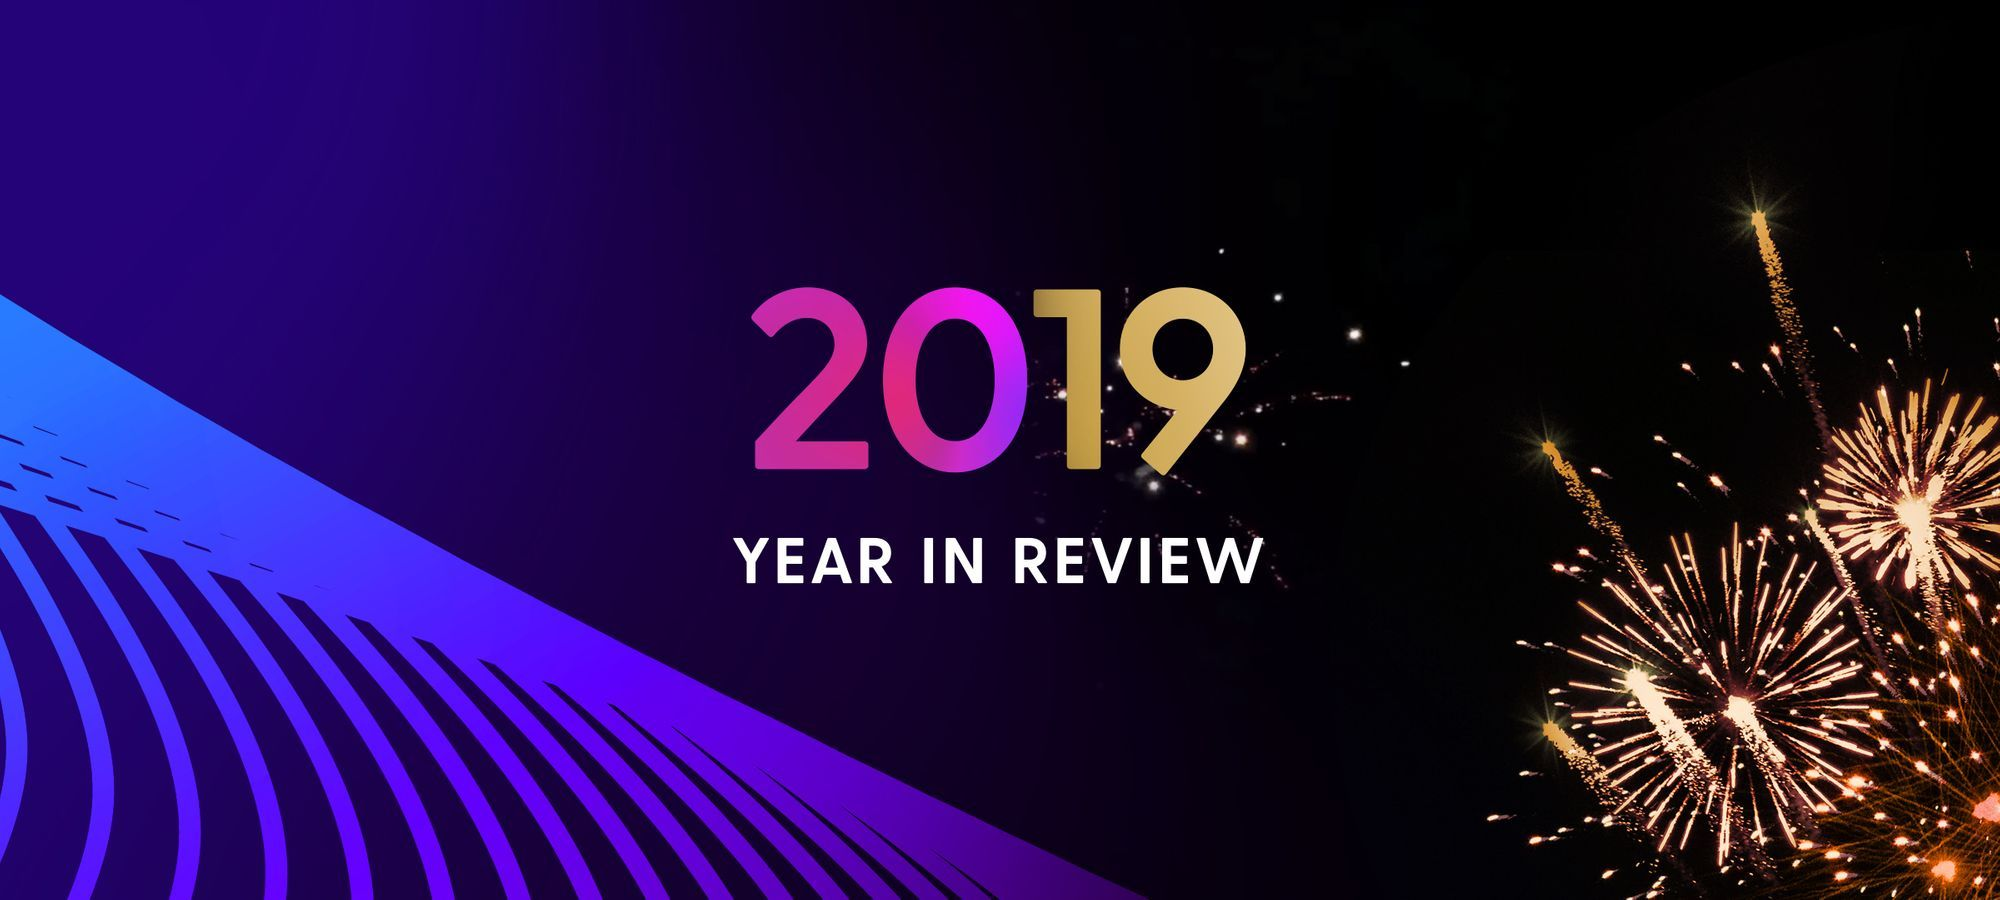 2019-current-year-in-review